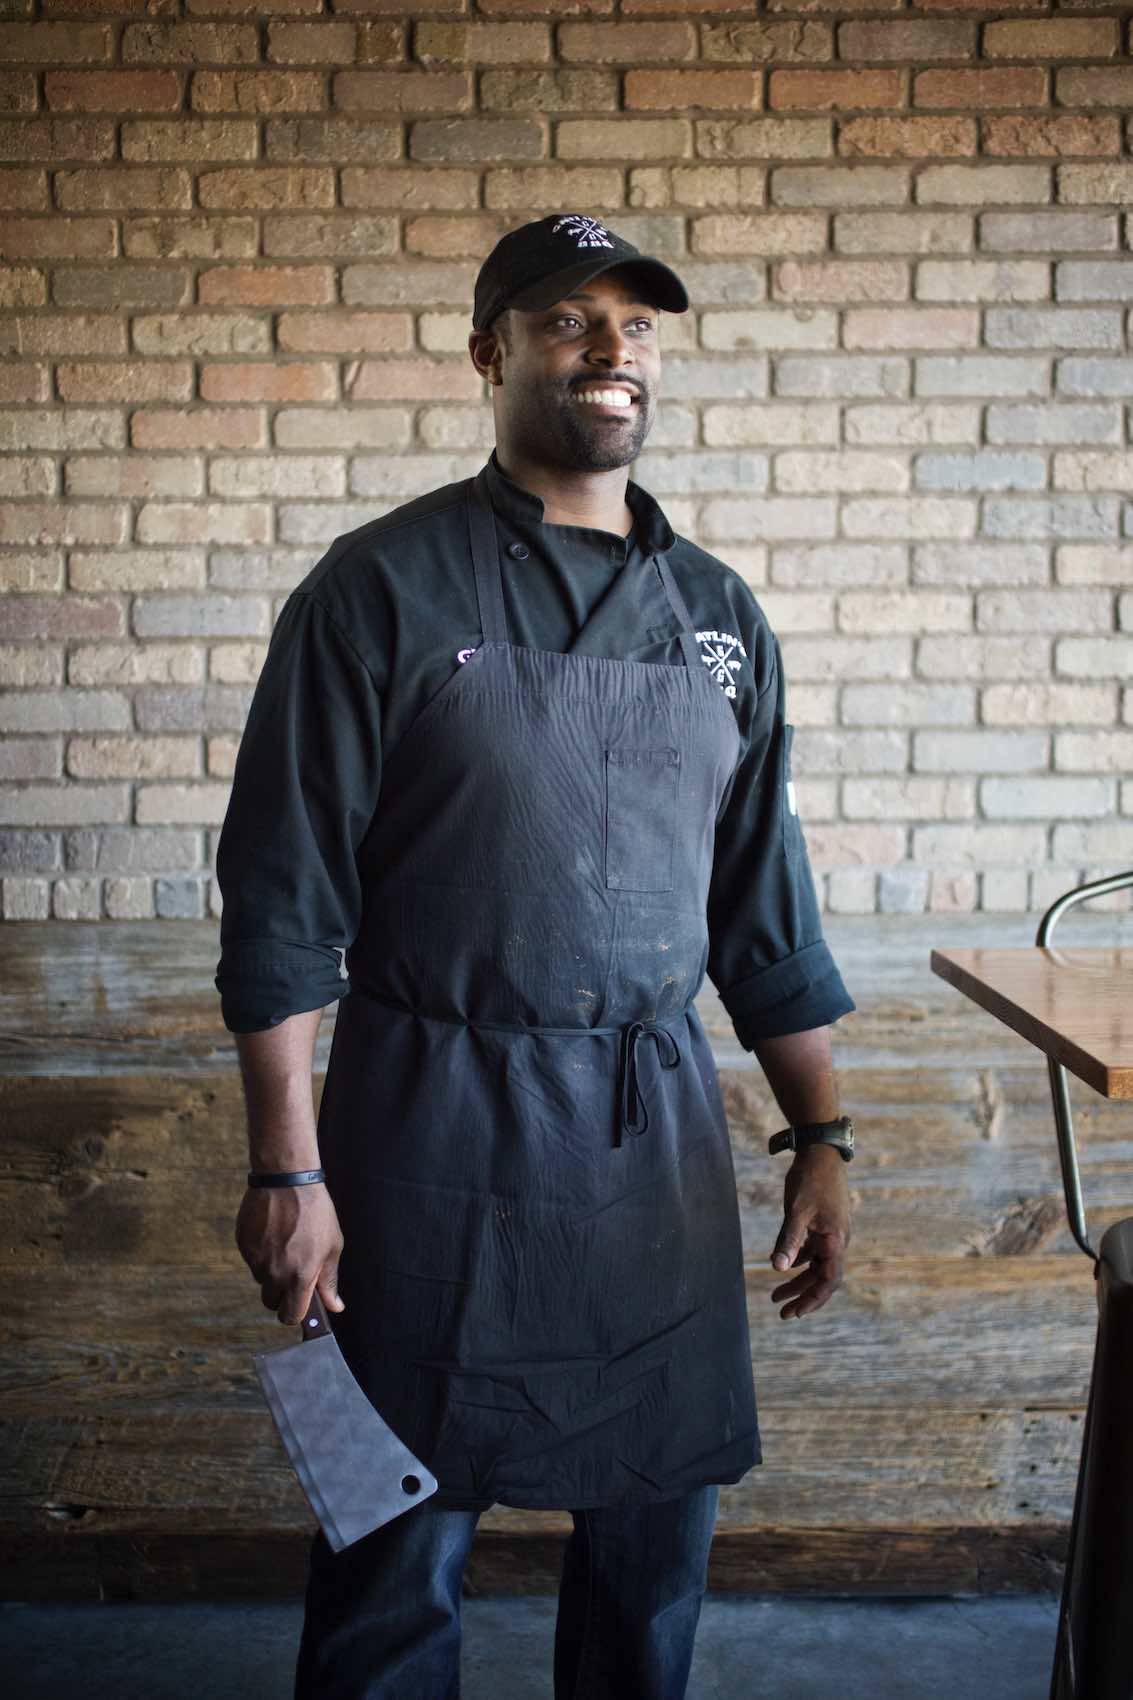 Jody Horton Photography - Chef in uniform holding a butcher